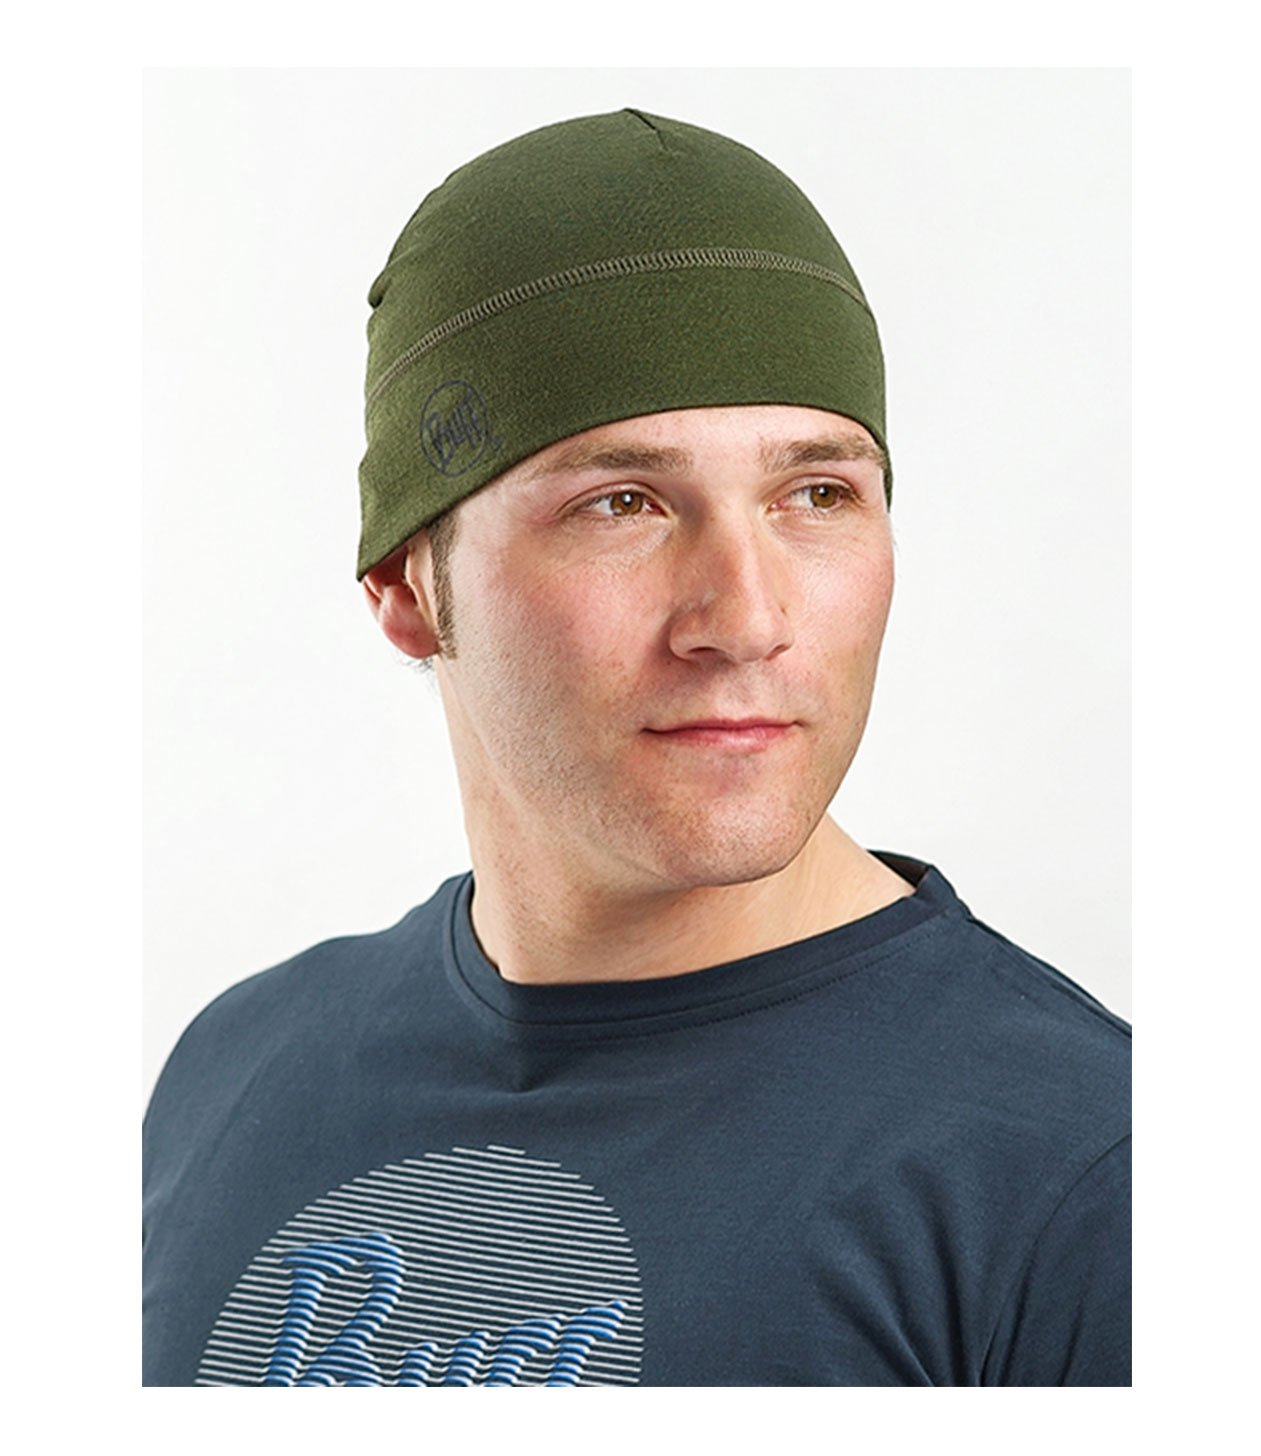 BUFF Lightweight Merino Wool Hat 43b1cc6d8bcd